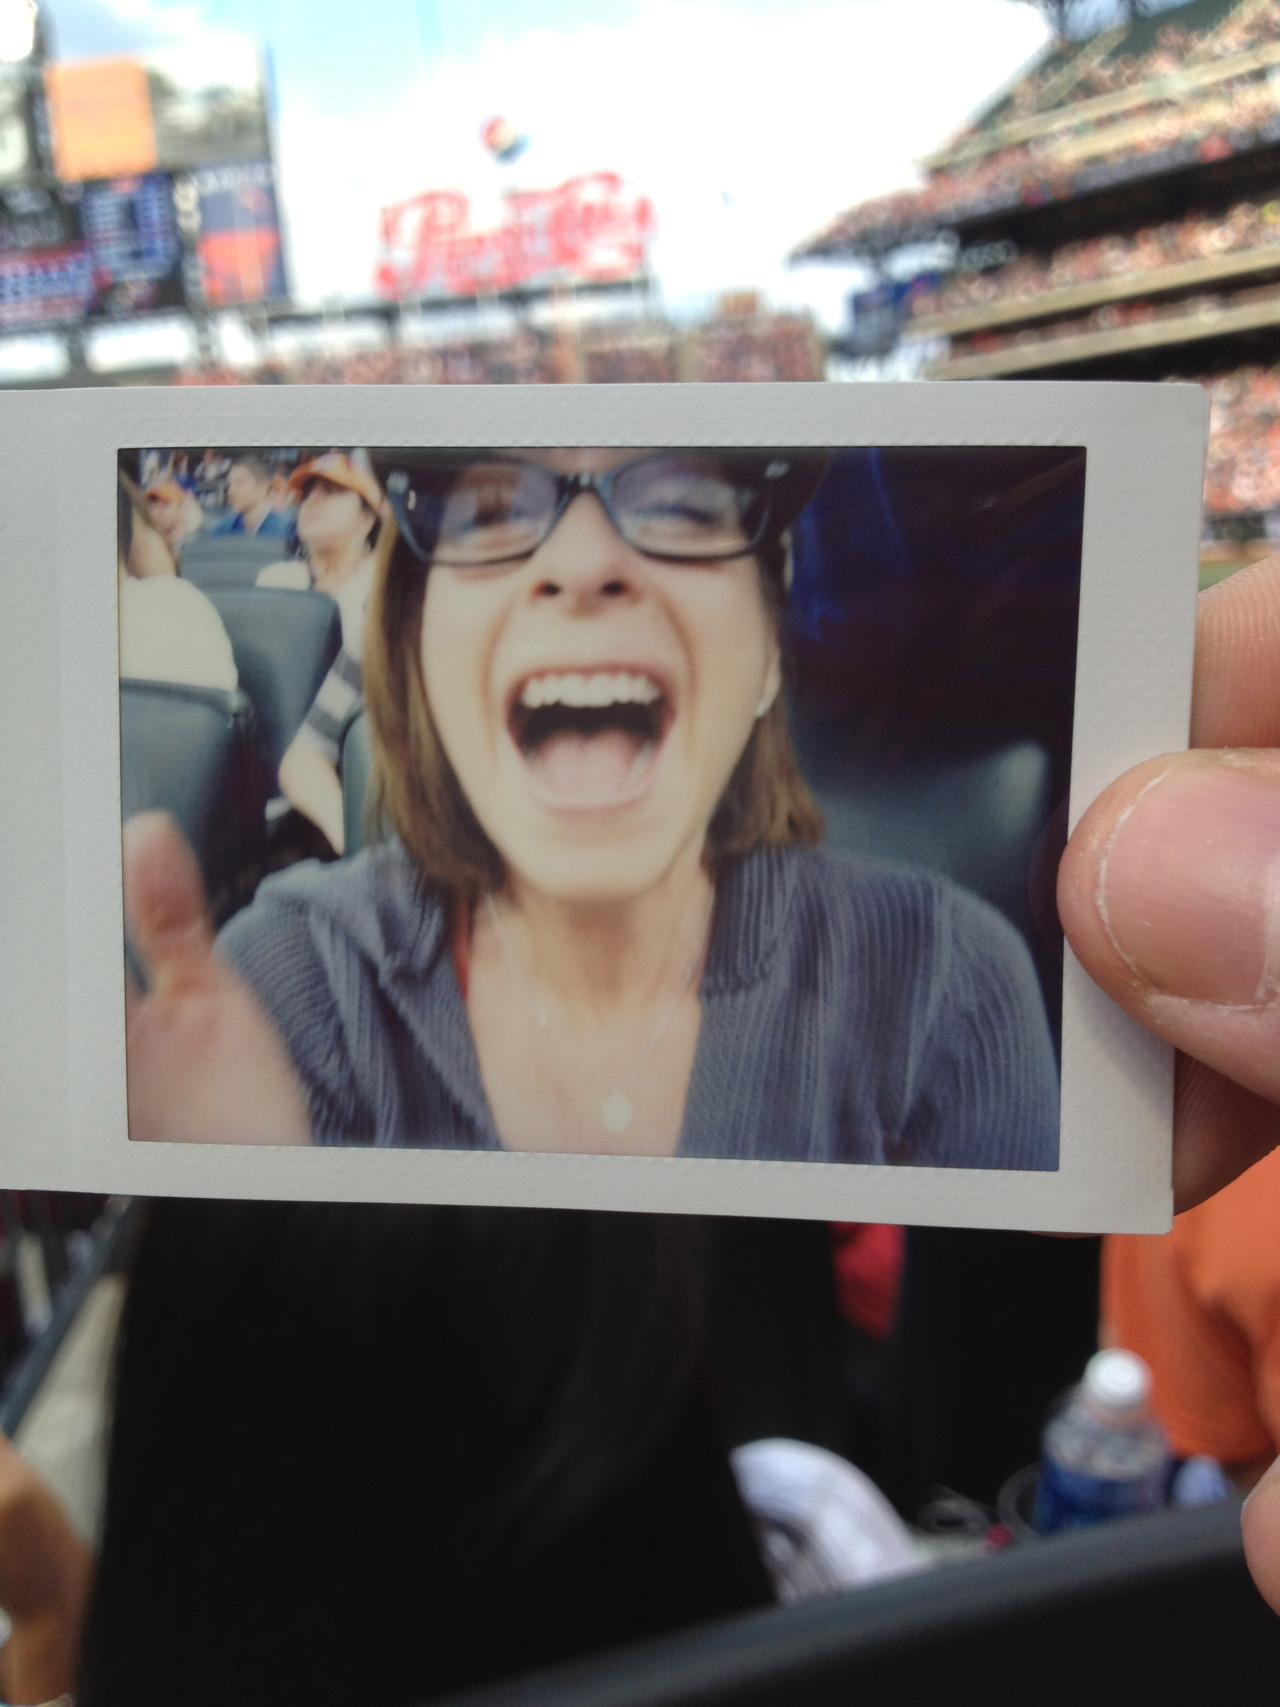 My mother enjoying herself at a Mets game